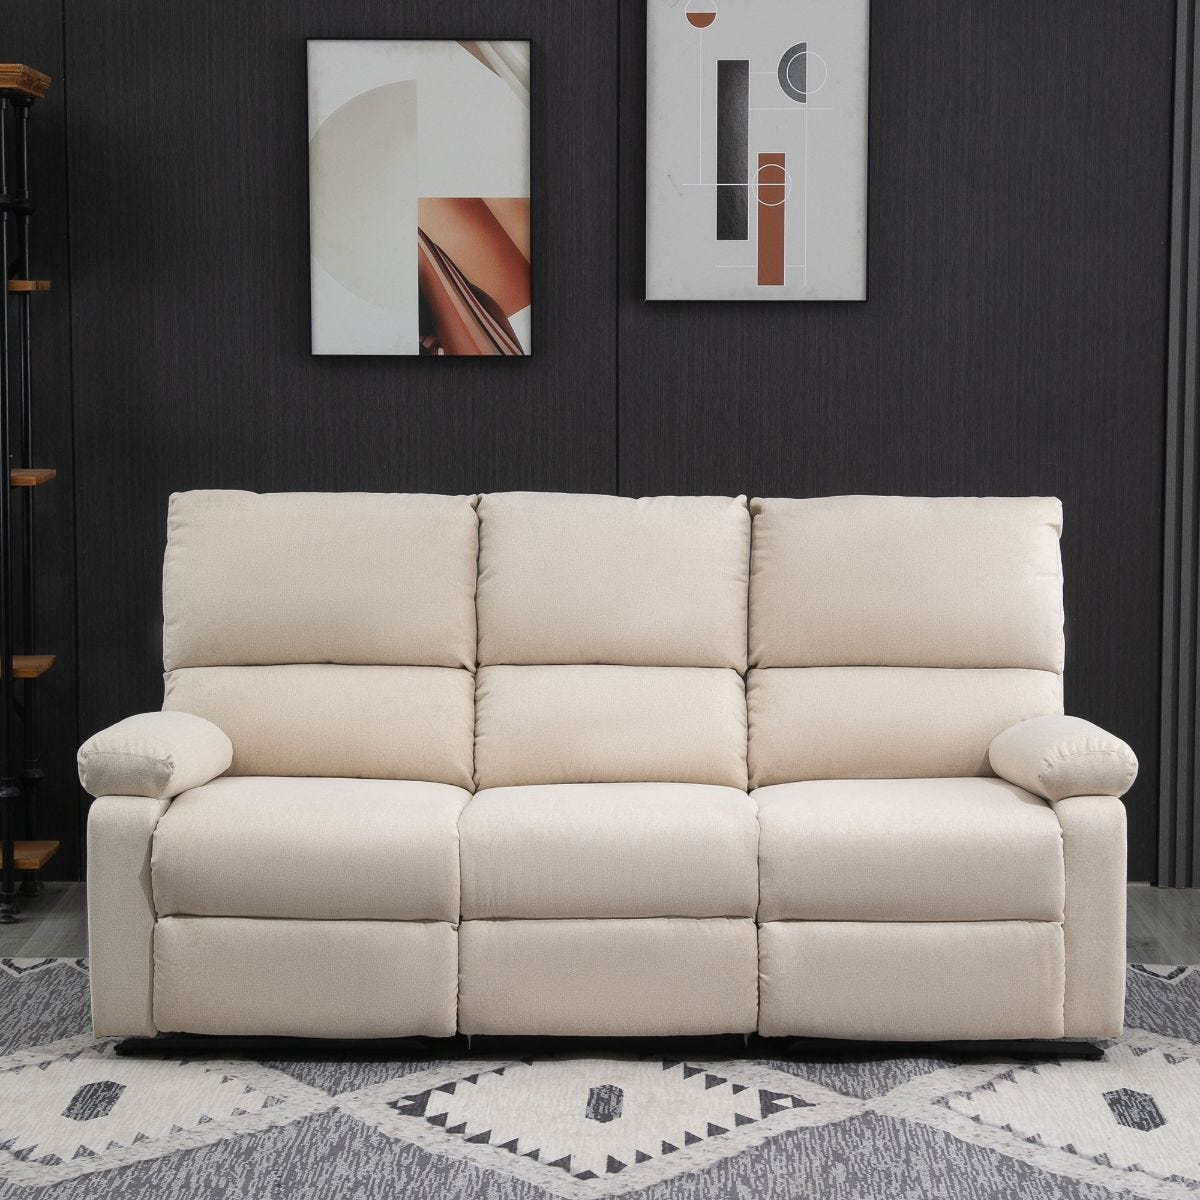 Reclining Three Seater Sofa Home Theater Seat Beige